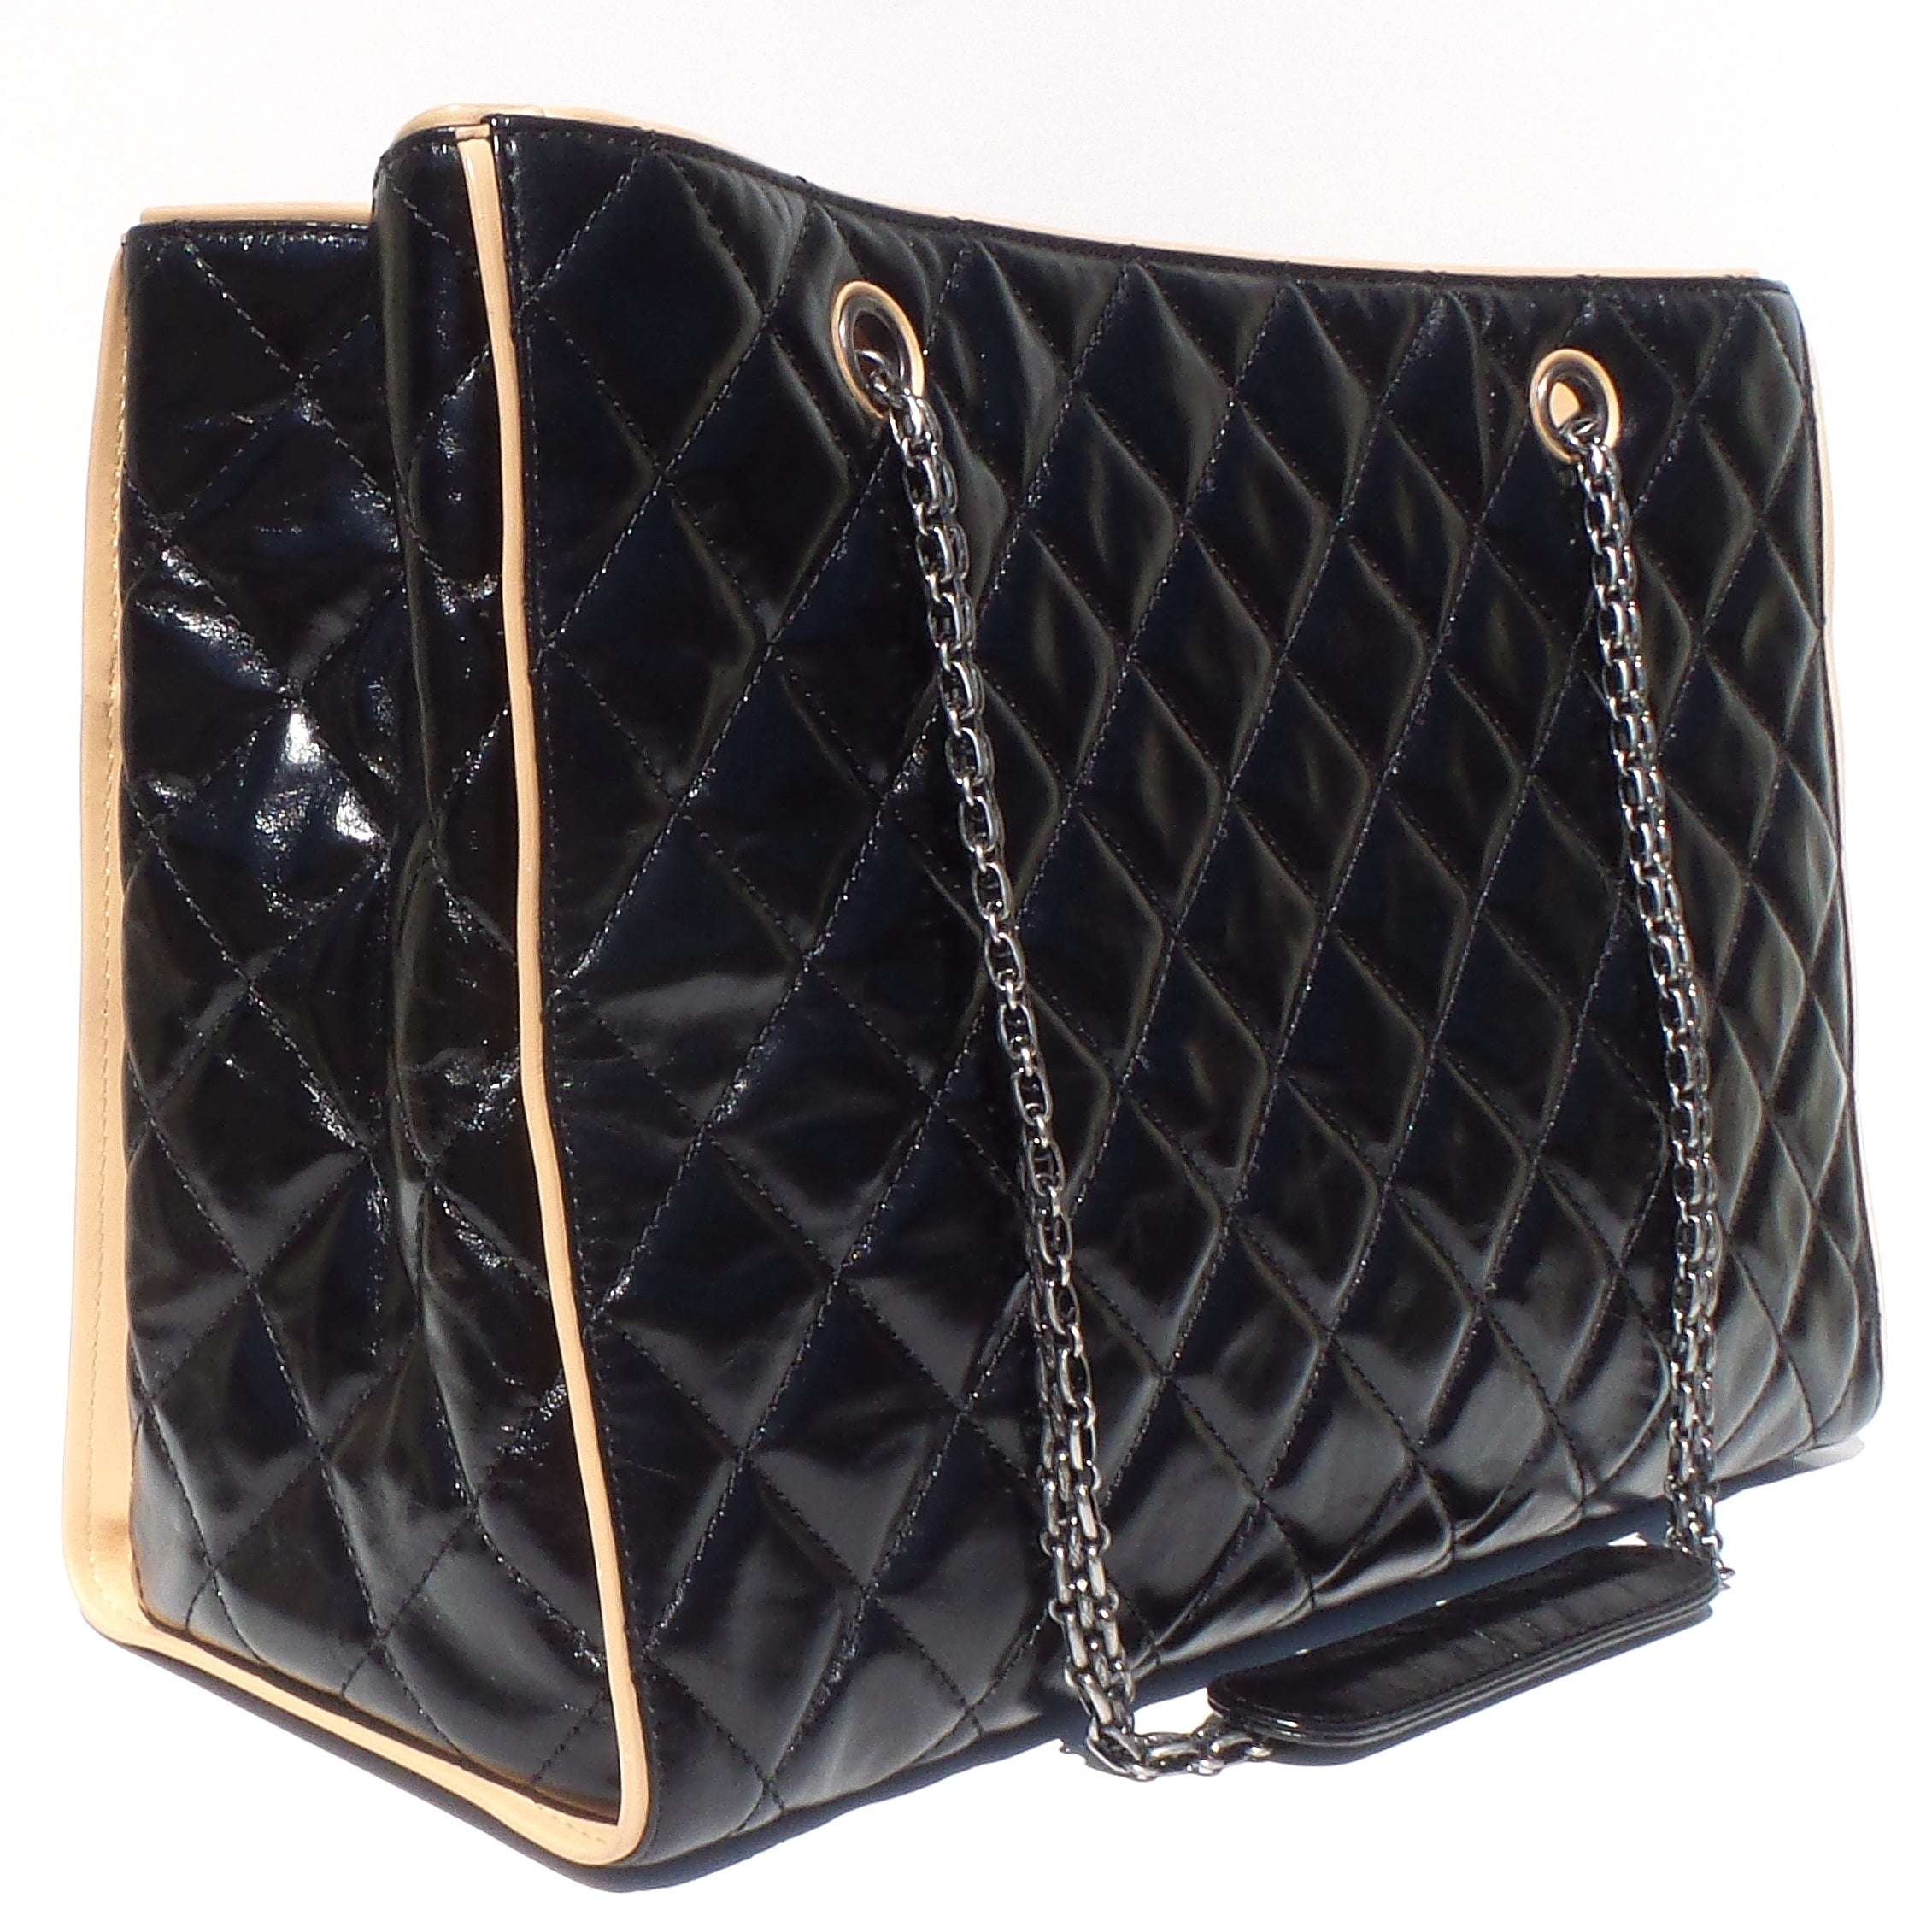 05d66dddbfd2 CHANEL Black Glazed Quilted Leather Beige 2.55 Reissue Grand Shopping Tote  Bag